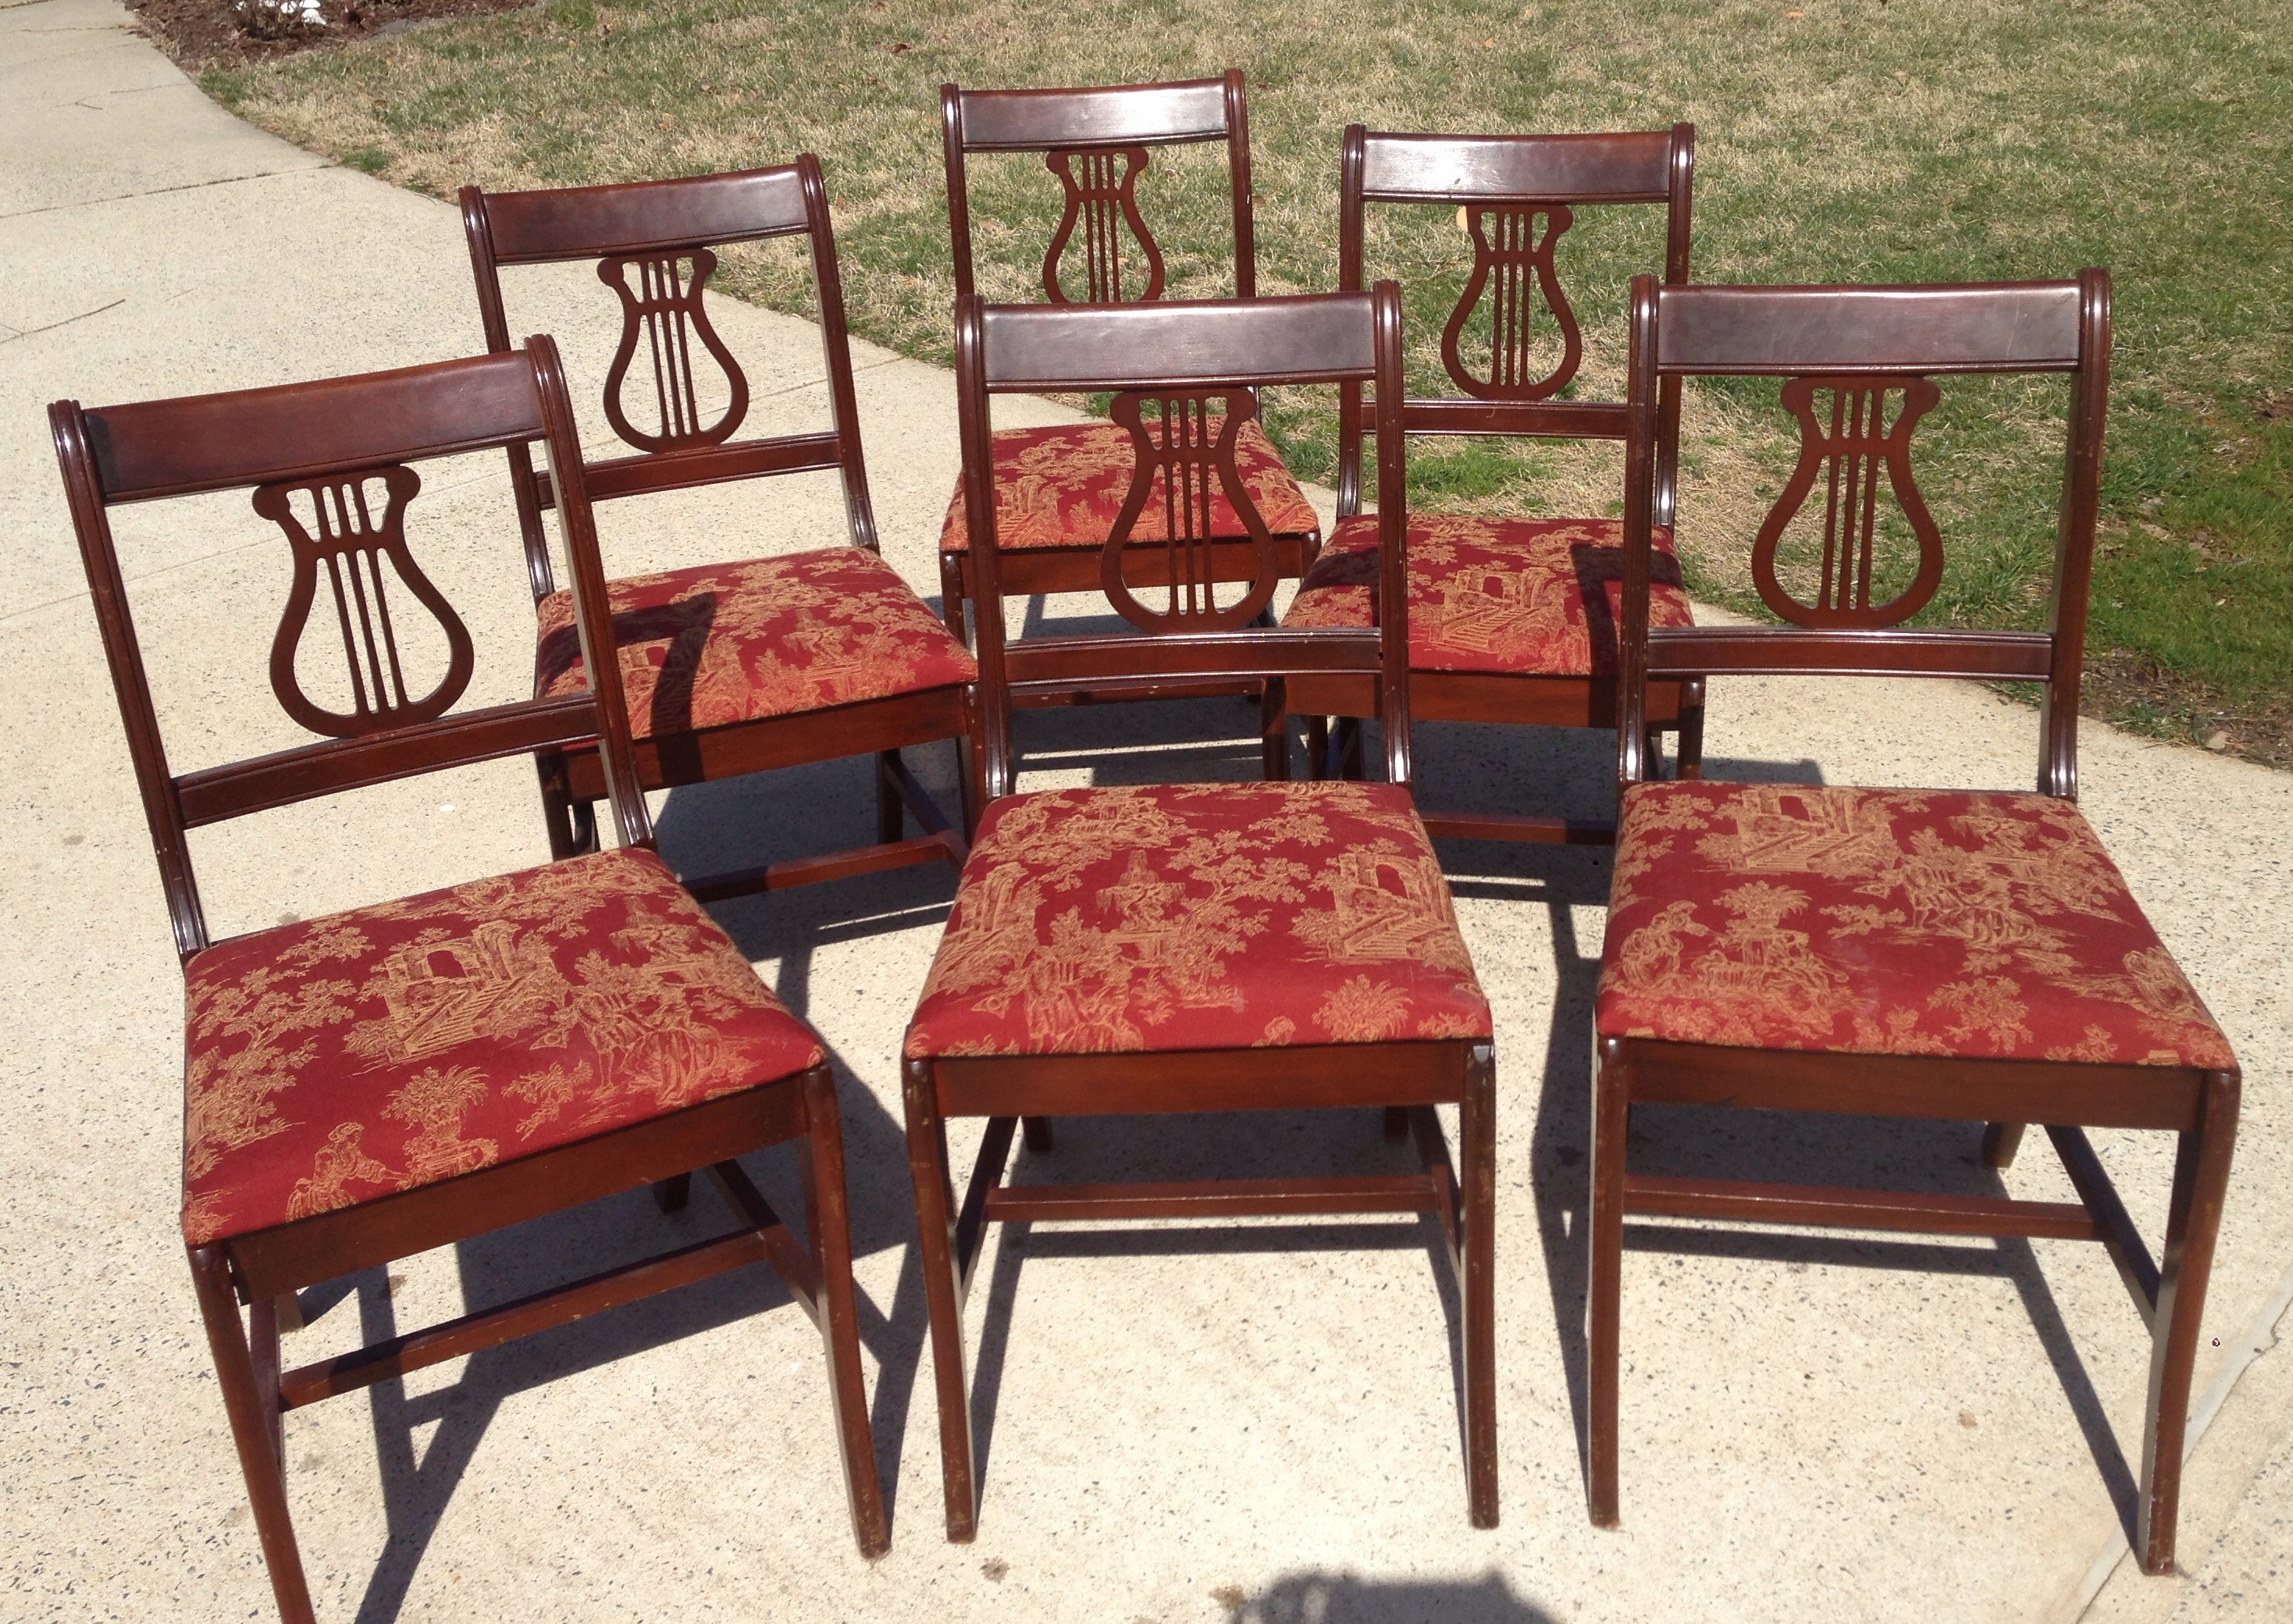 Antique duncan phyfe chairs - 6 Duncan Phyfe Chairs 02